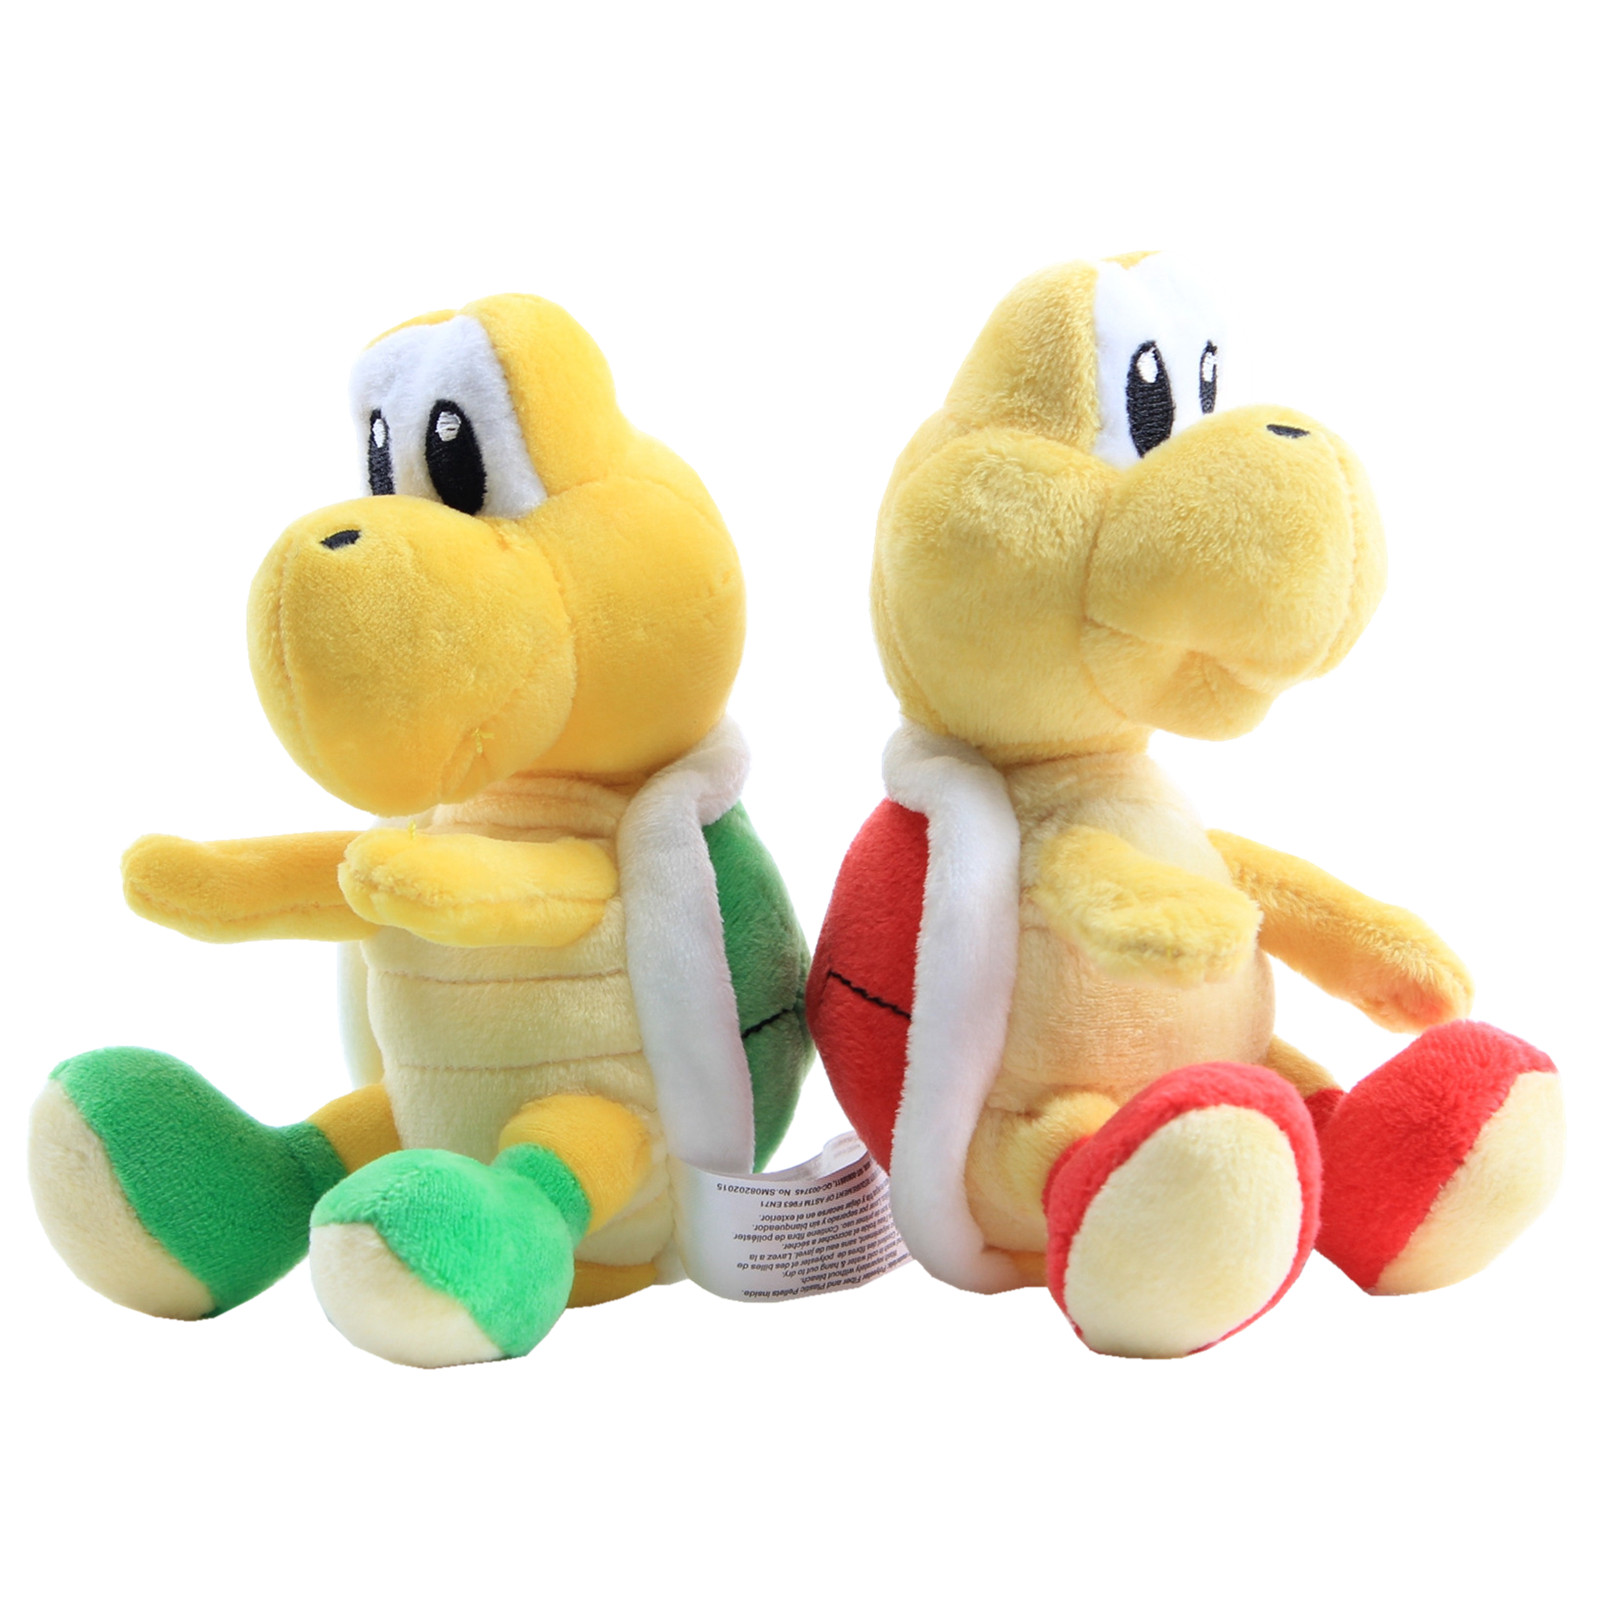 Mario Mario Koopa Troopa Plush Toys Doll Japan Cartoon Anime Cute Kawaii Tortoise Stuffed Animals Toys Children Baby Gift